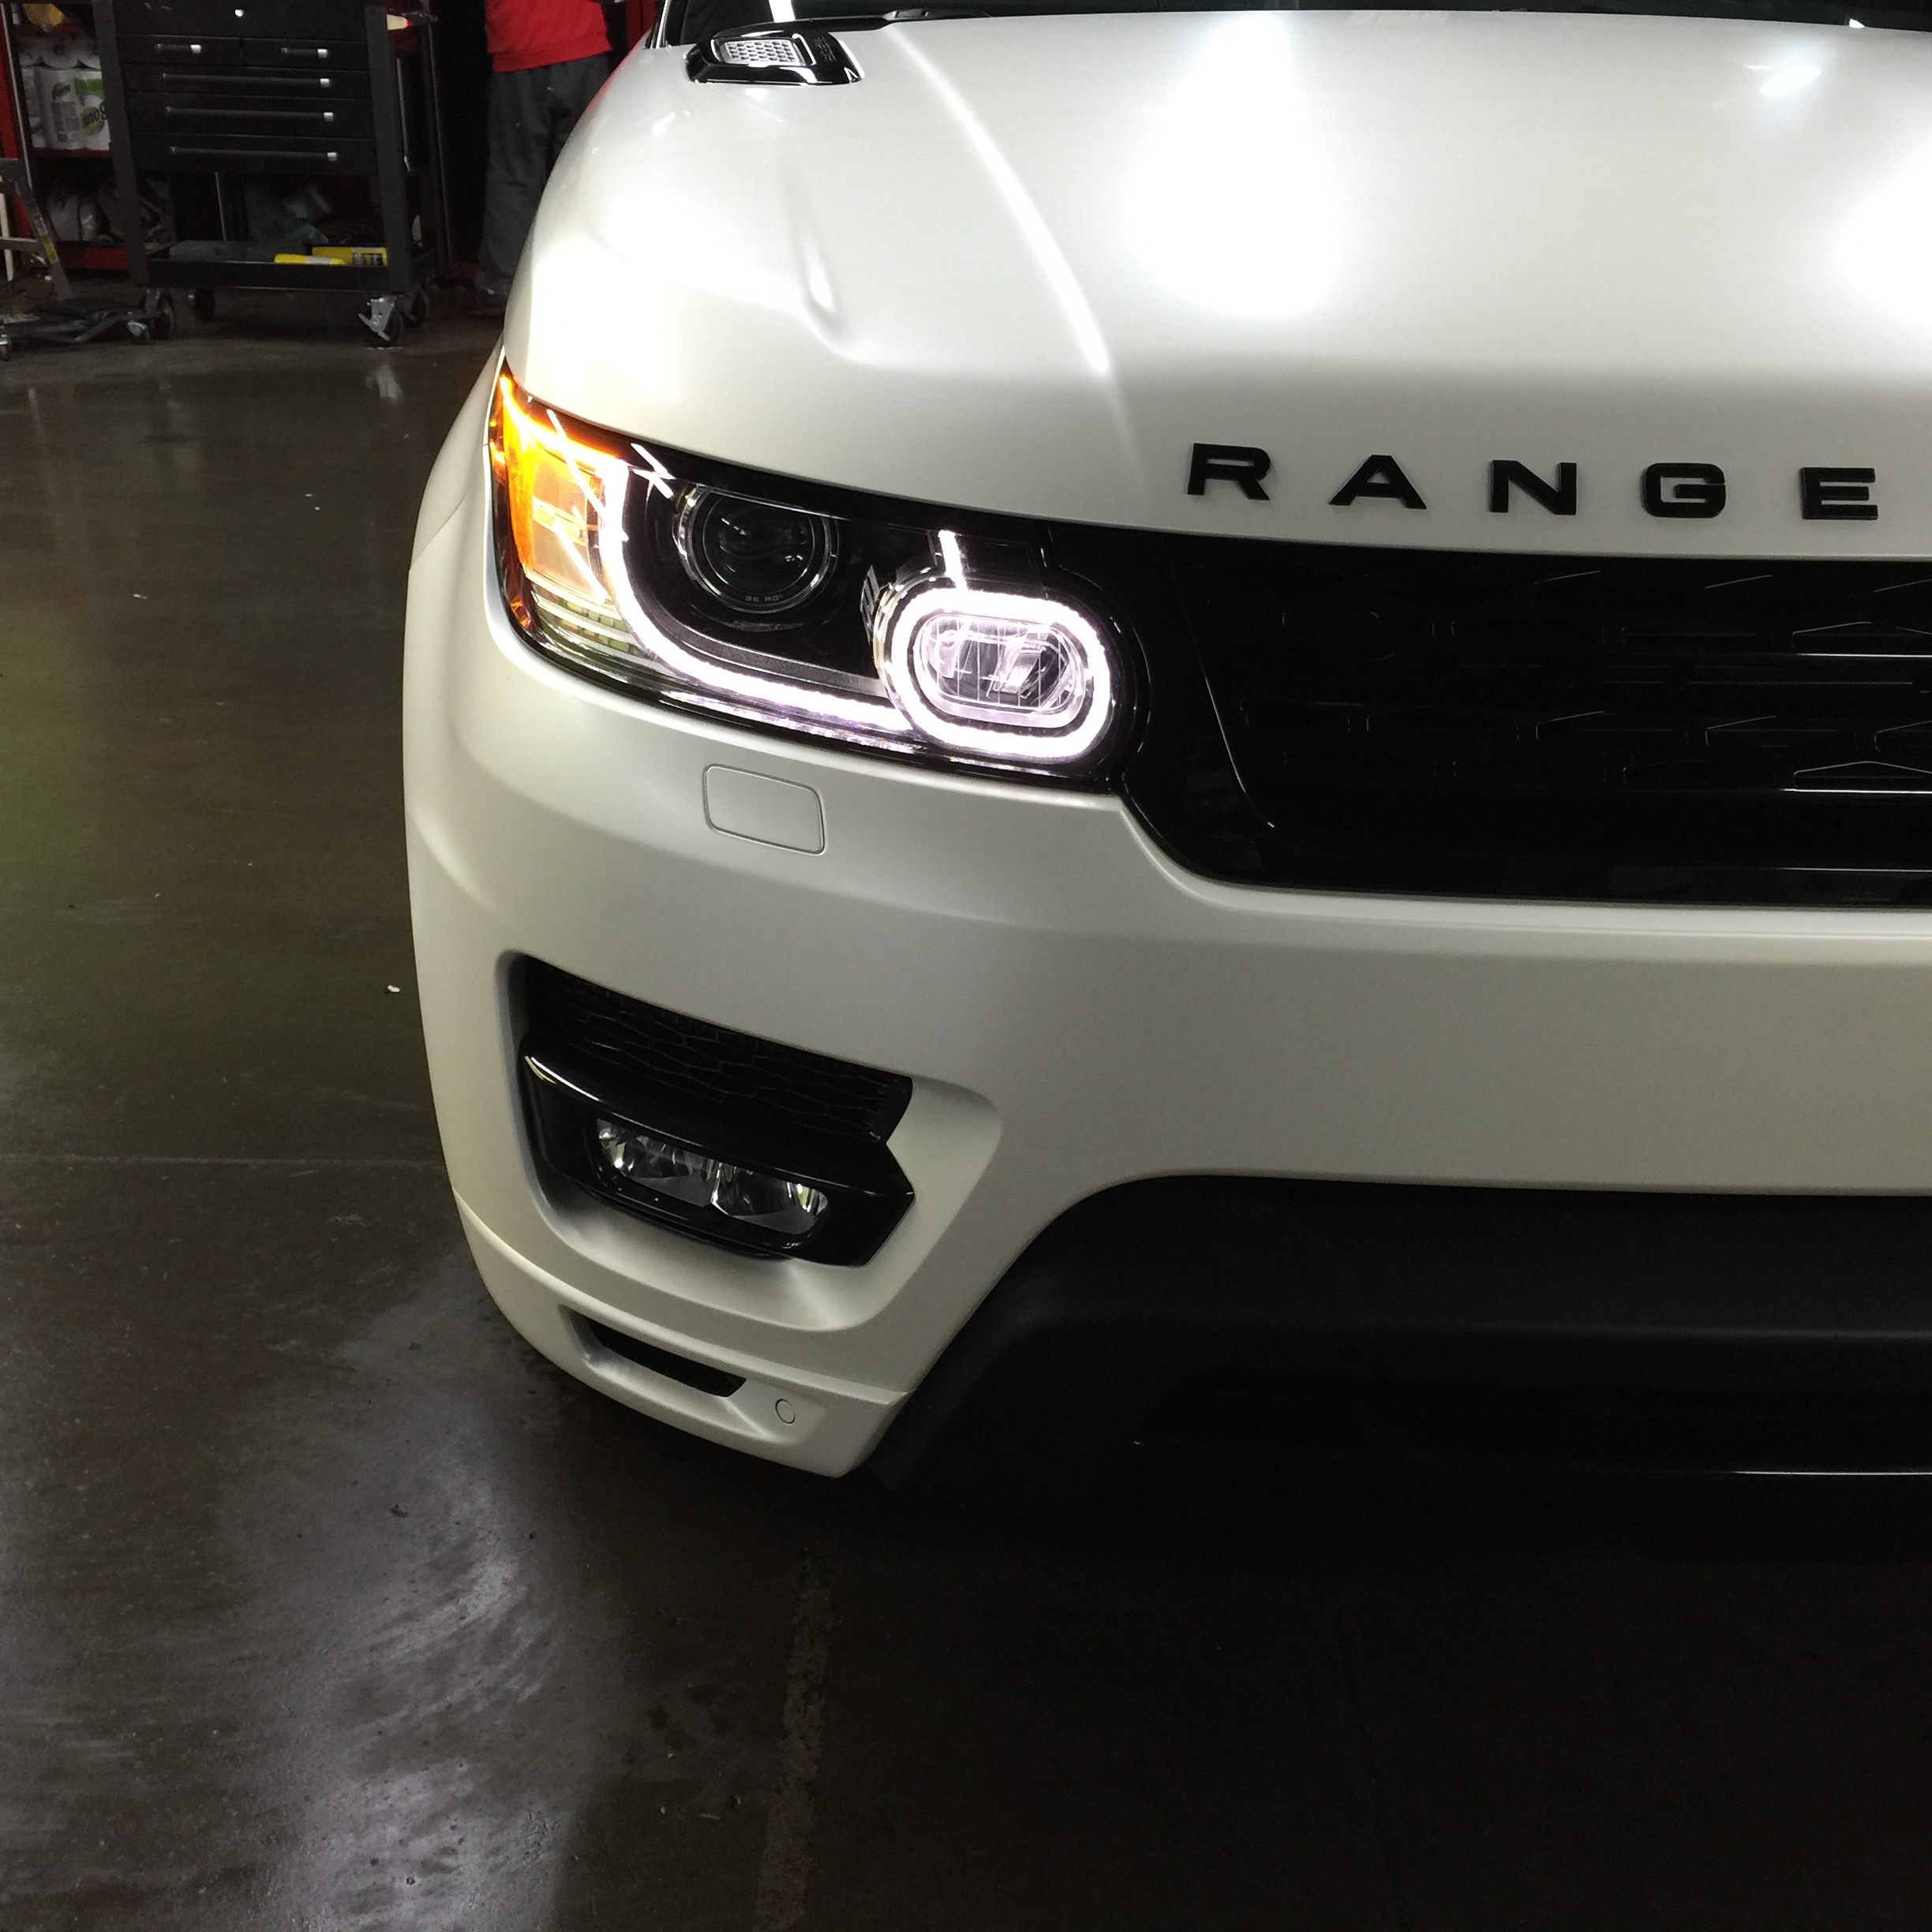 2015 Land Rover Range Rover Sport Supercharged Ventura Ca: 2015 Range Rover Sport + Upgrades 635HP